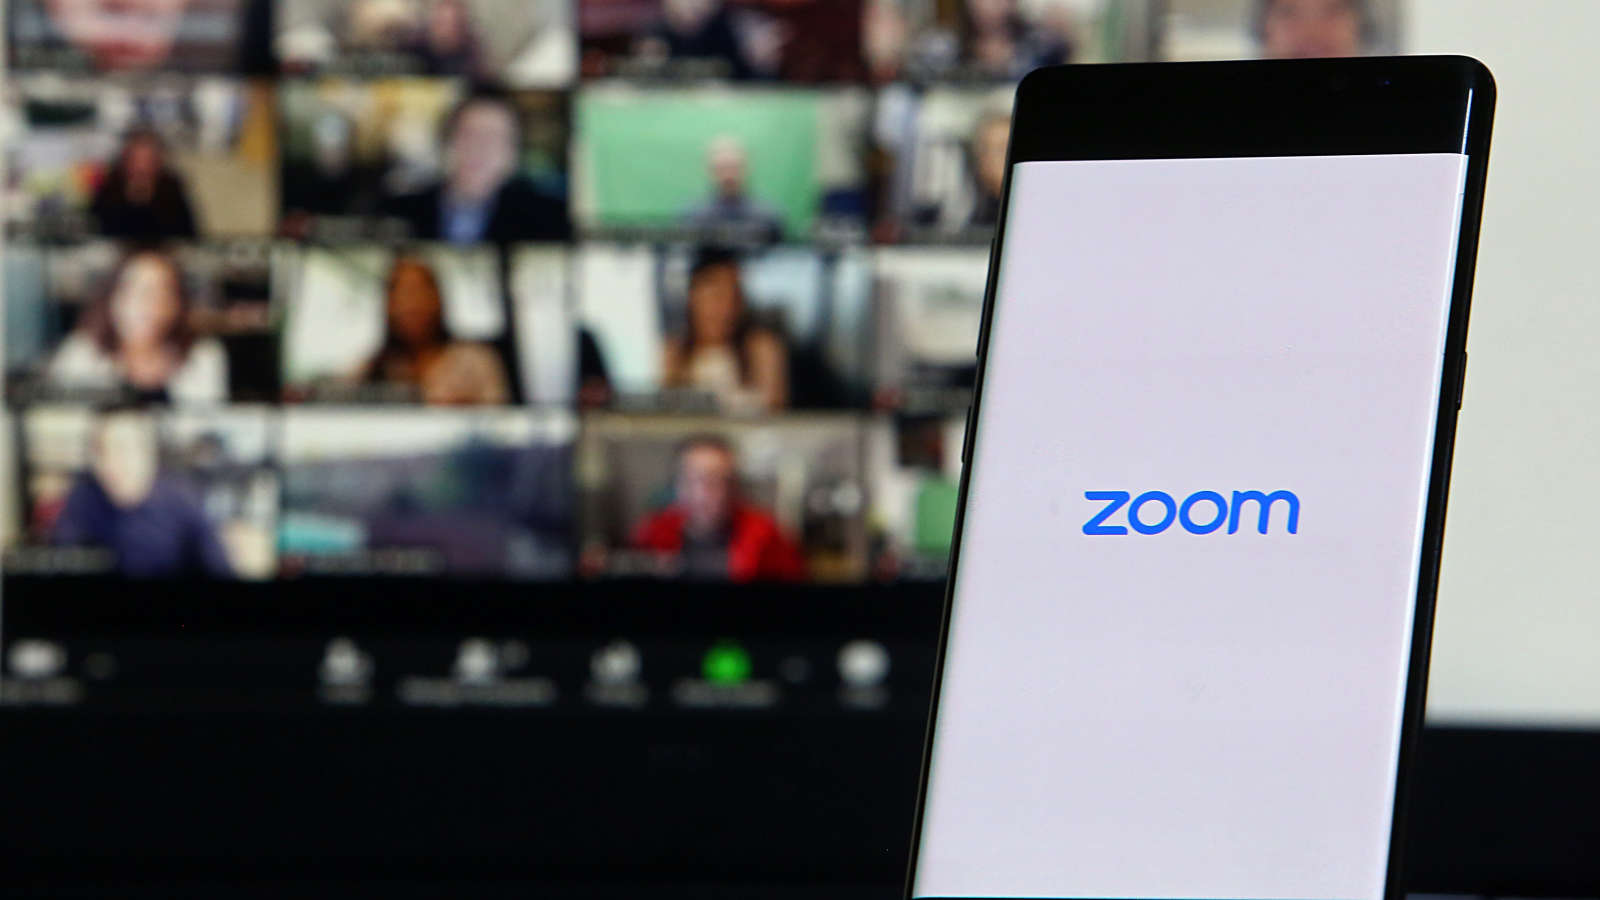 Know Zoom's Hidden Watermarks Before Sharing That Meeting